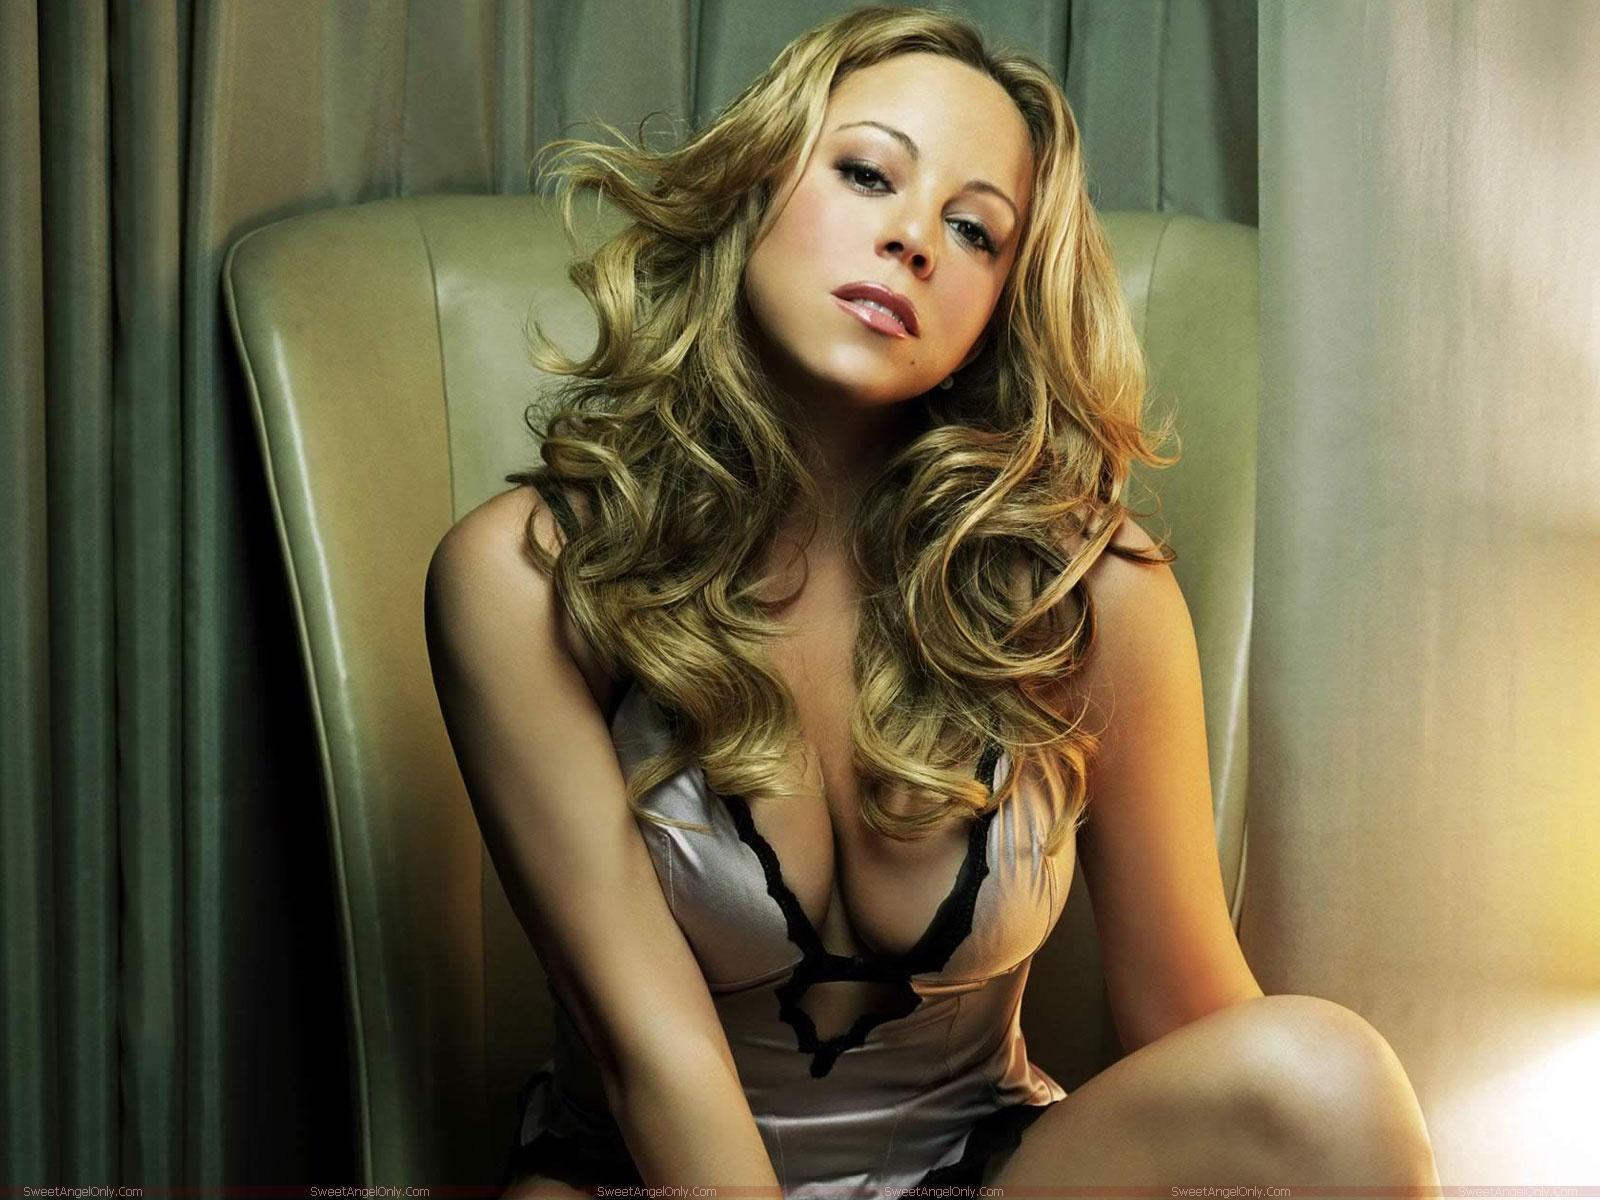 http://4.bp.blogspot.com/-5cHZ7eMsn3Q/TY3n6vvKlJI/AAAAAAAAF-8/RrsZvrUnXX4/s1600/mariah_carey_hollywood_hot_actress_wallpaper_sweetangelonly_14.jpg